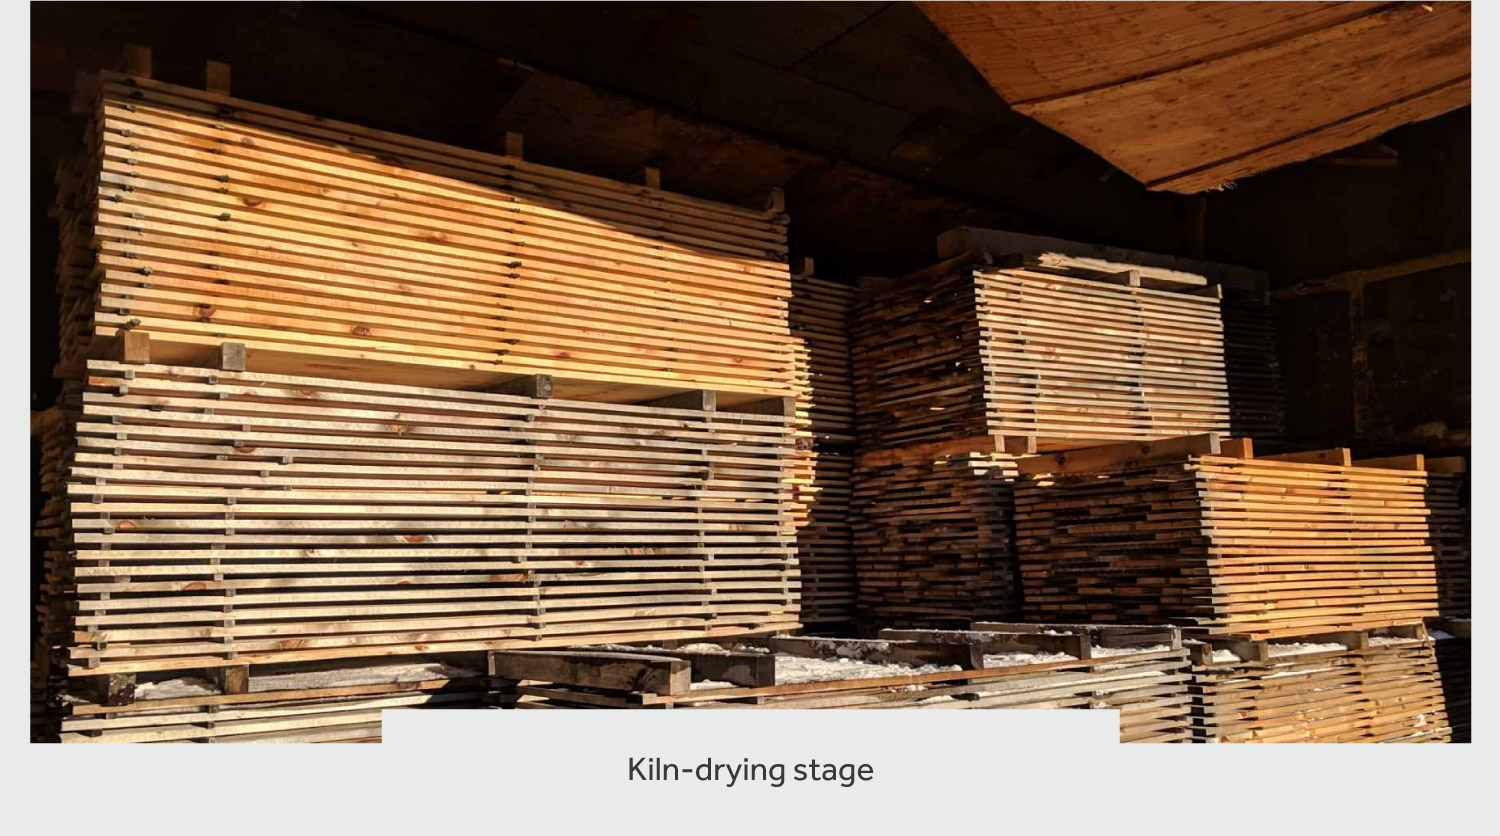 timberthane process kiln-drying